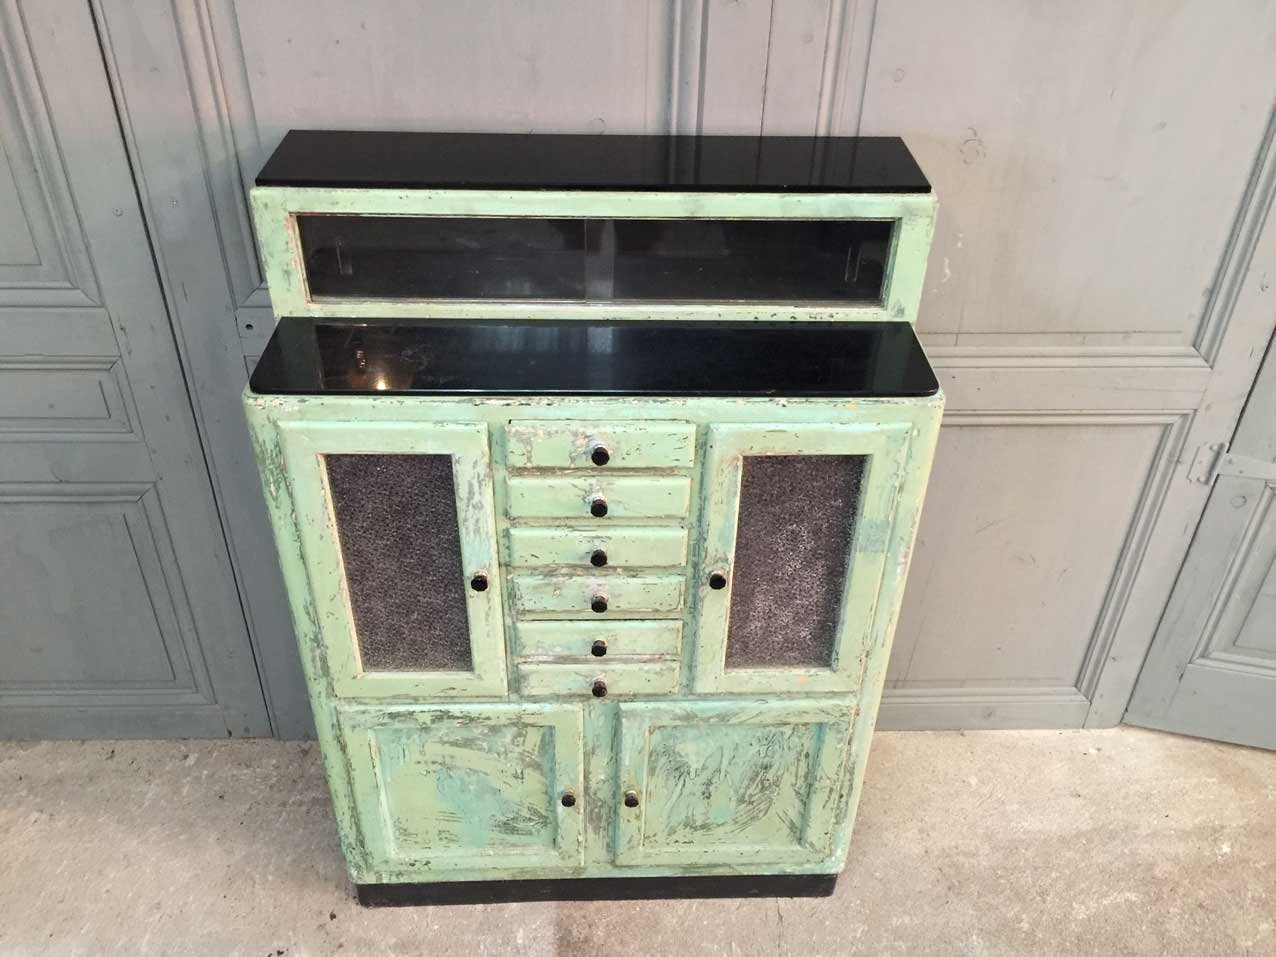 Antique Metal Dental Cabinet French Wooden Dentist Cabinet 1950 For Sale At Pamono